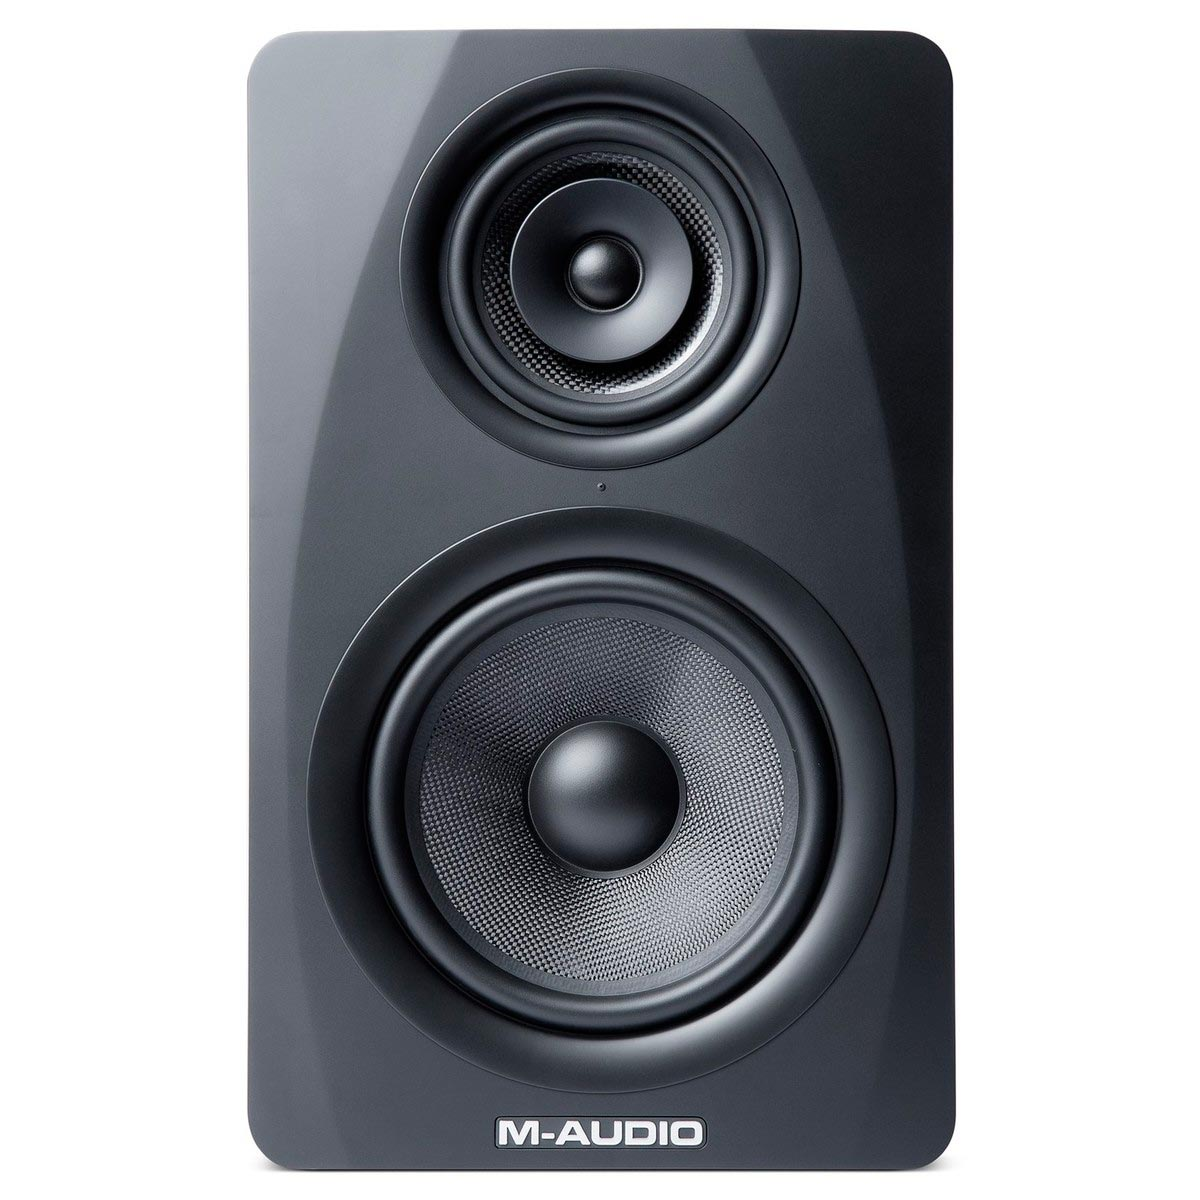 M-Audio M3-8 Black - Monitor de estudio activo de 3 vías